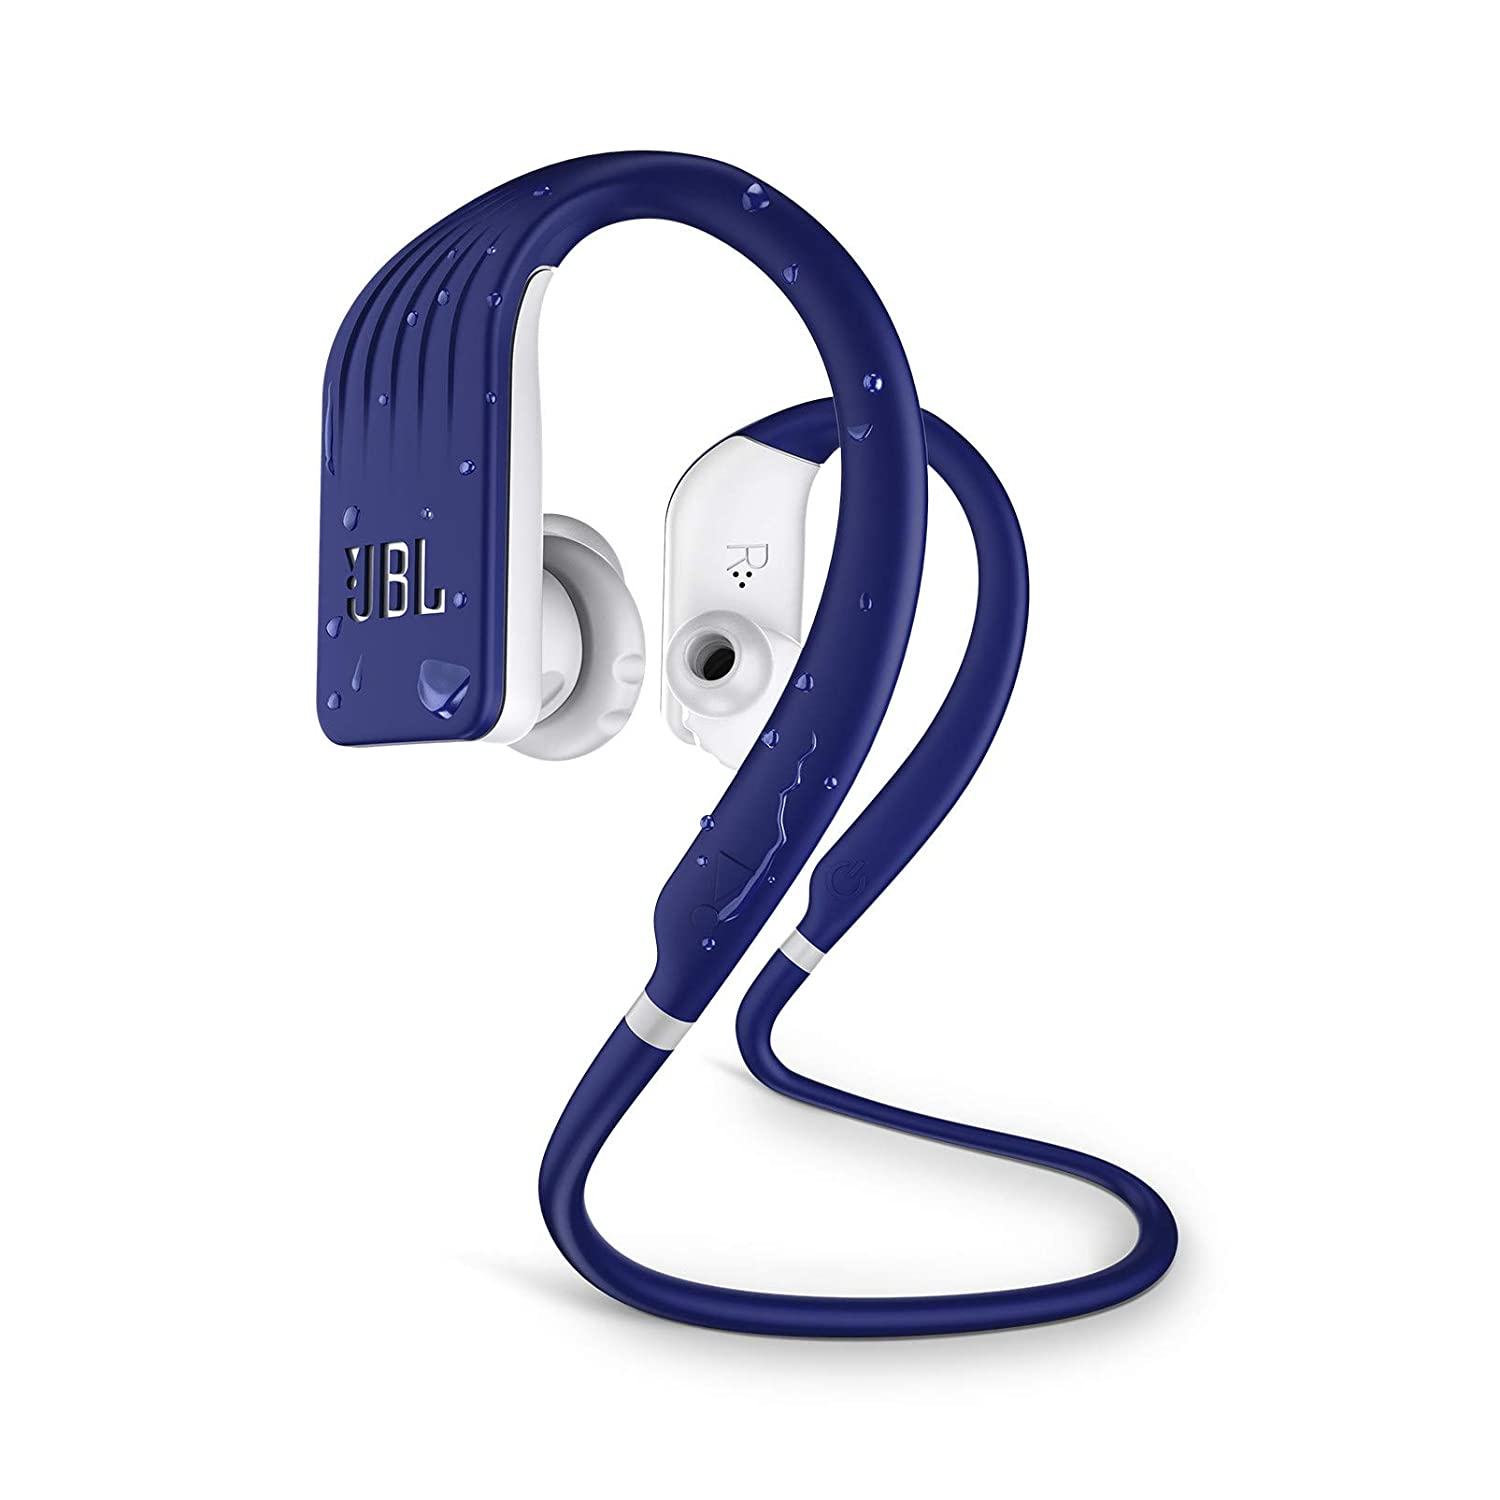 JBL Endurance Jump, Wireless in-Ear Sport Headphone with One-Button  Mic/Remote - Blue